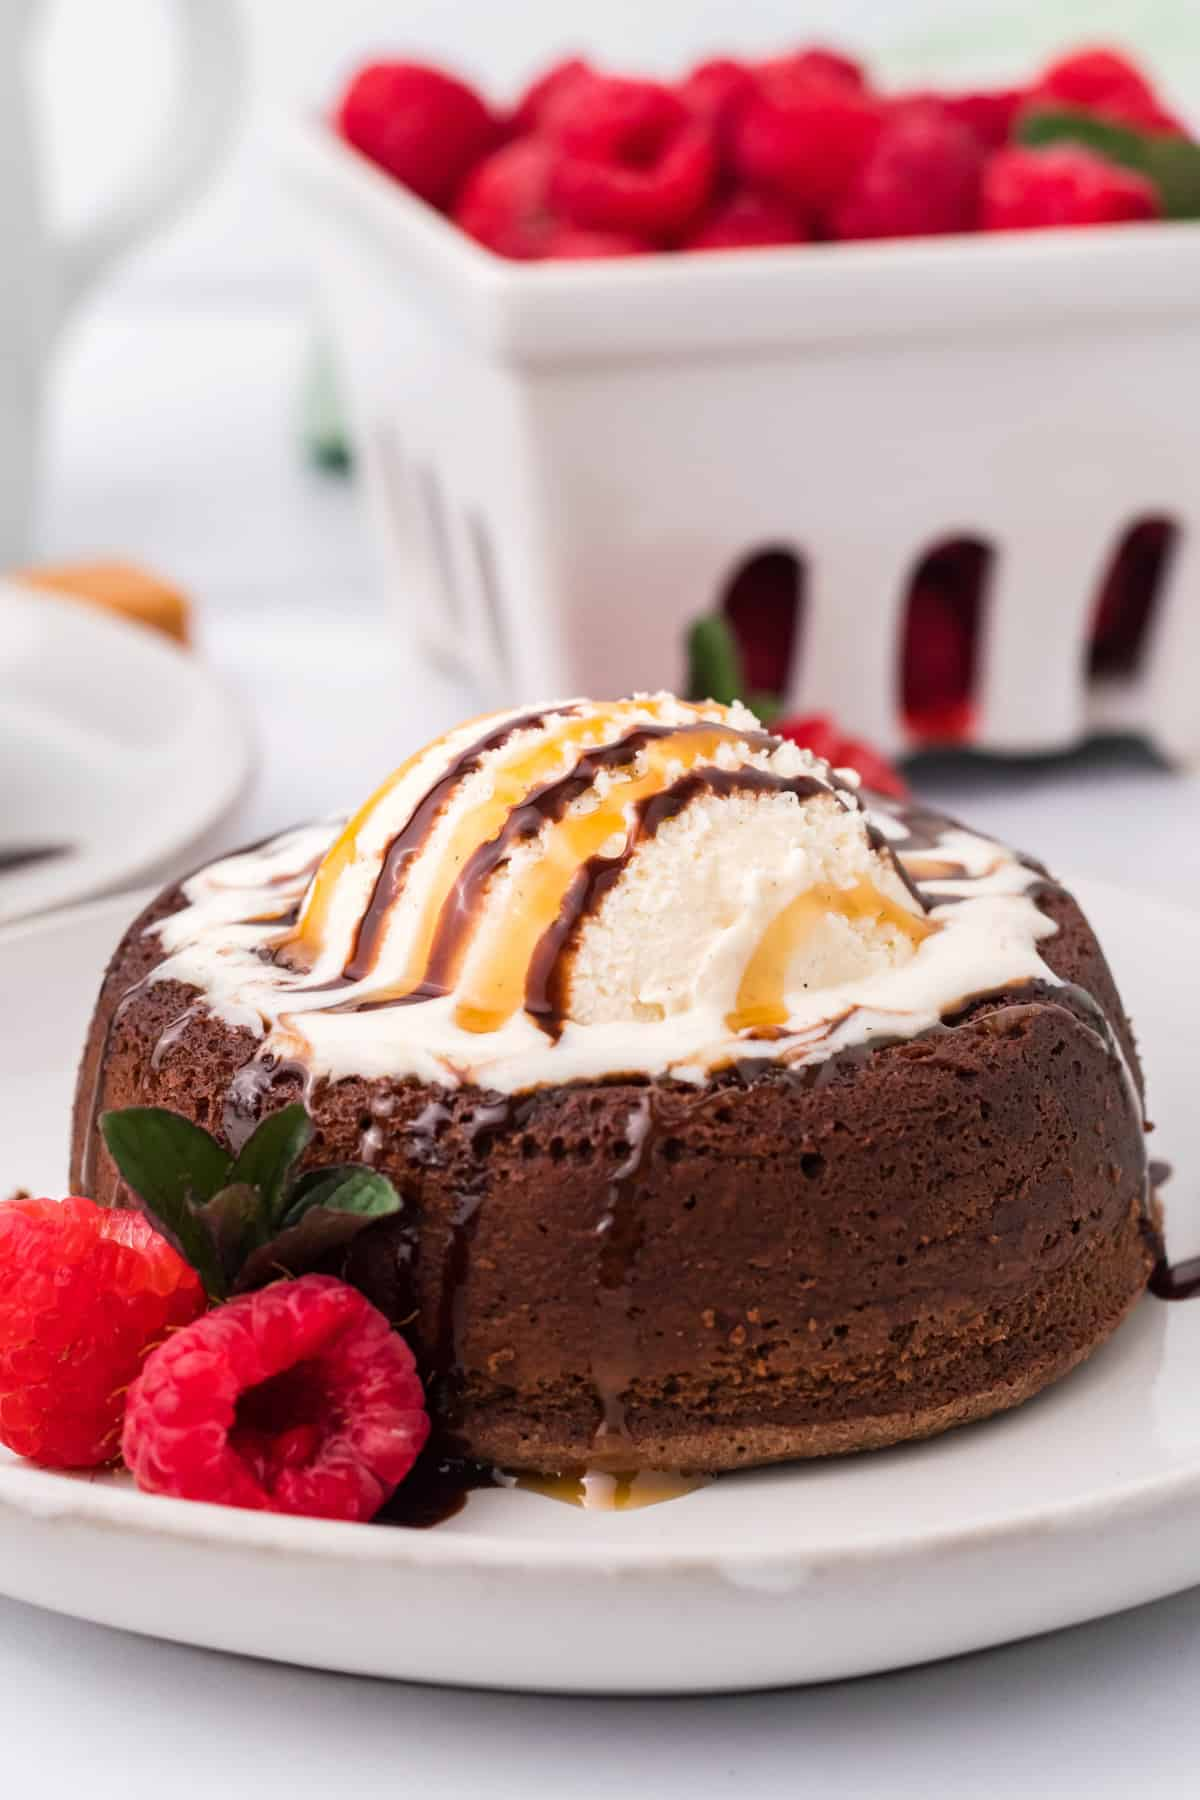 Side view of Lava Cake on white plate with raspberries